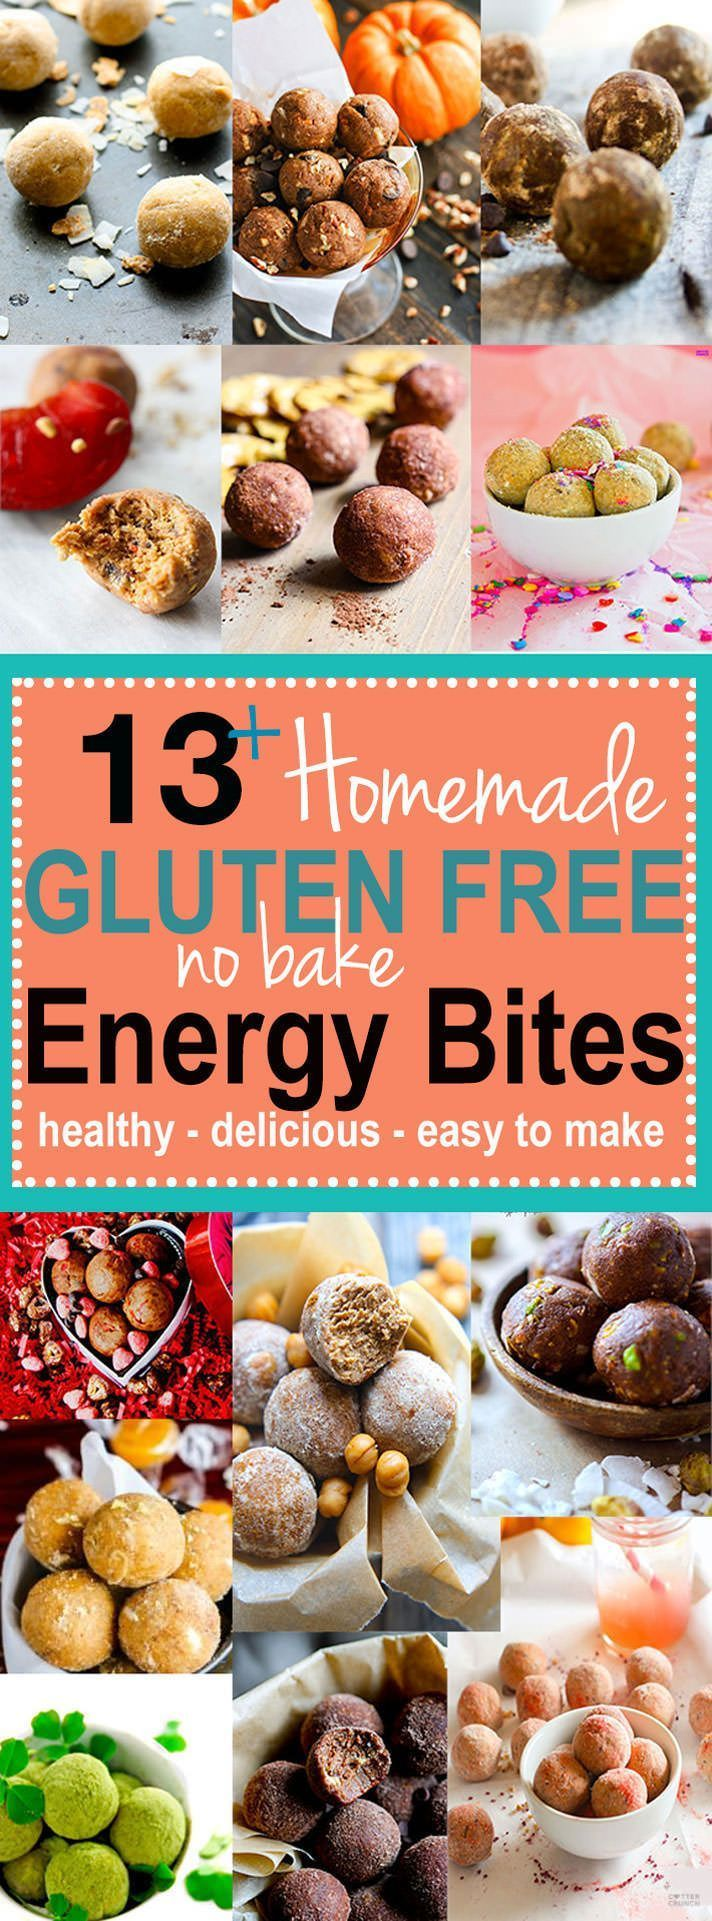 Best Of Healthy Bites 2015  Delish Gluten Free No Bake Energy Bites! All  Gluten